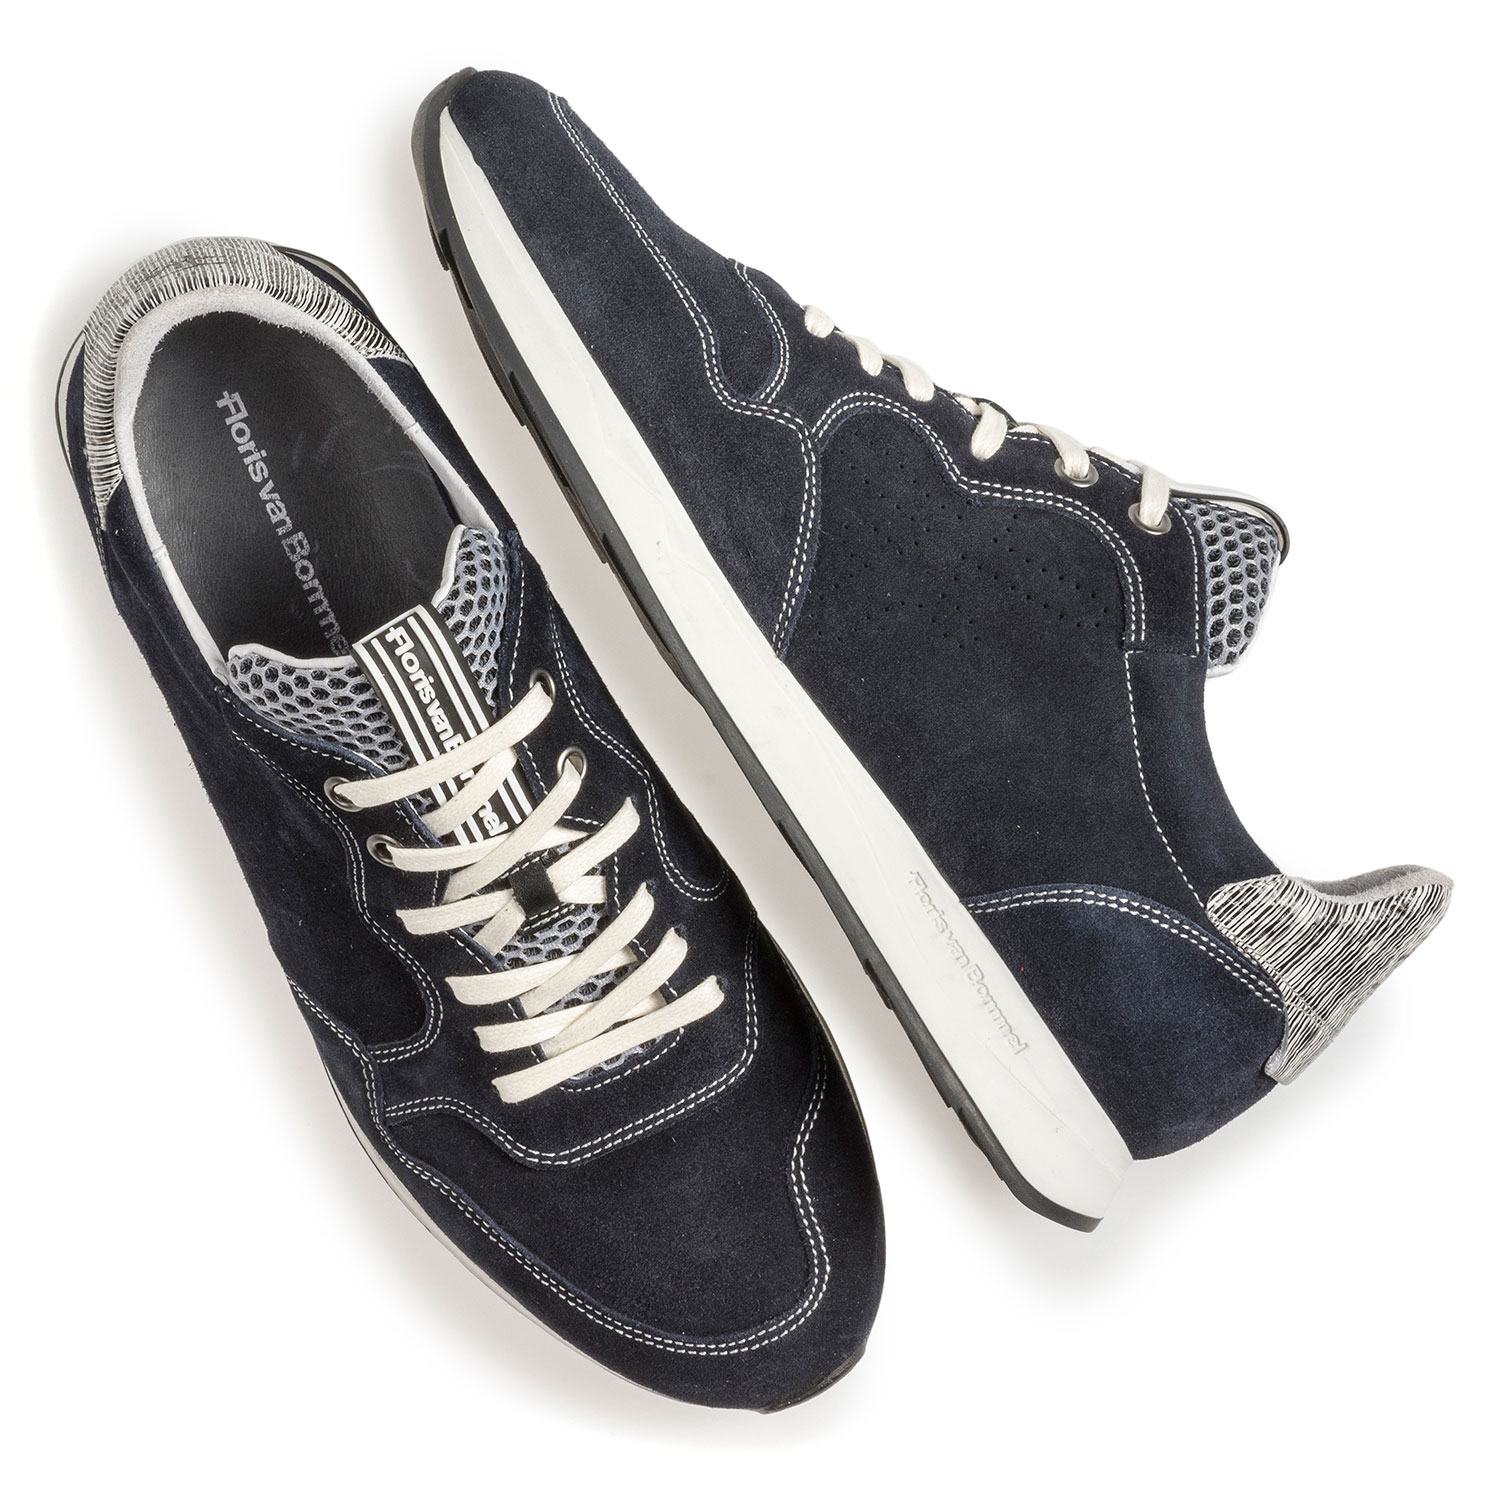 16446/01 - Blue suede leather sneaker